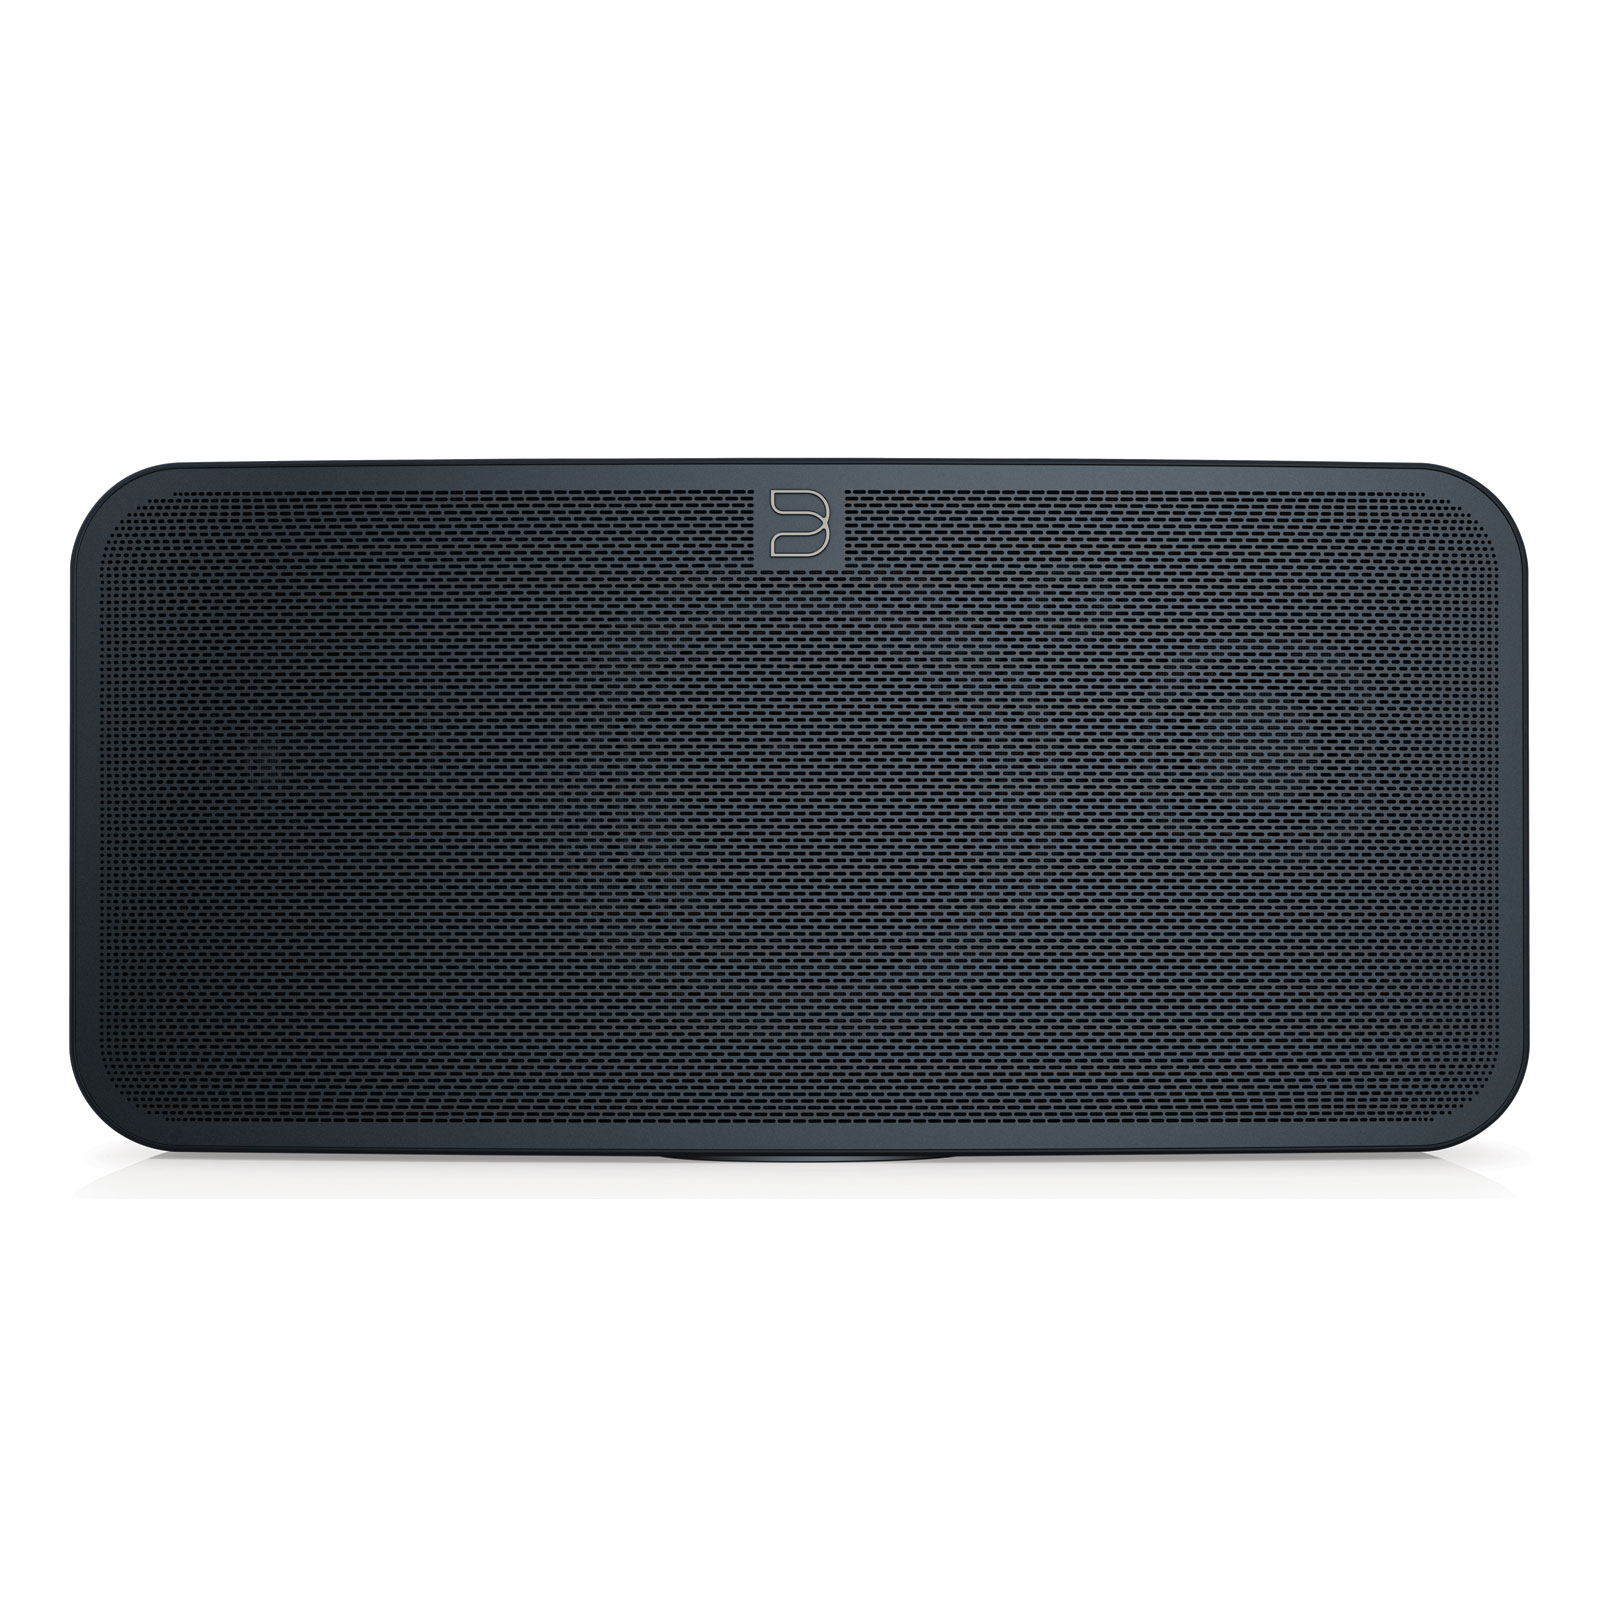 Dock & Enceinte Bluetooth Bluesound Pulse 2 Noir Système audio multiroom avec Wi-Fi, Bluetooth pour Streaming audio et Web radio compatible Hi-Res Audio